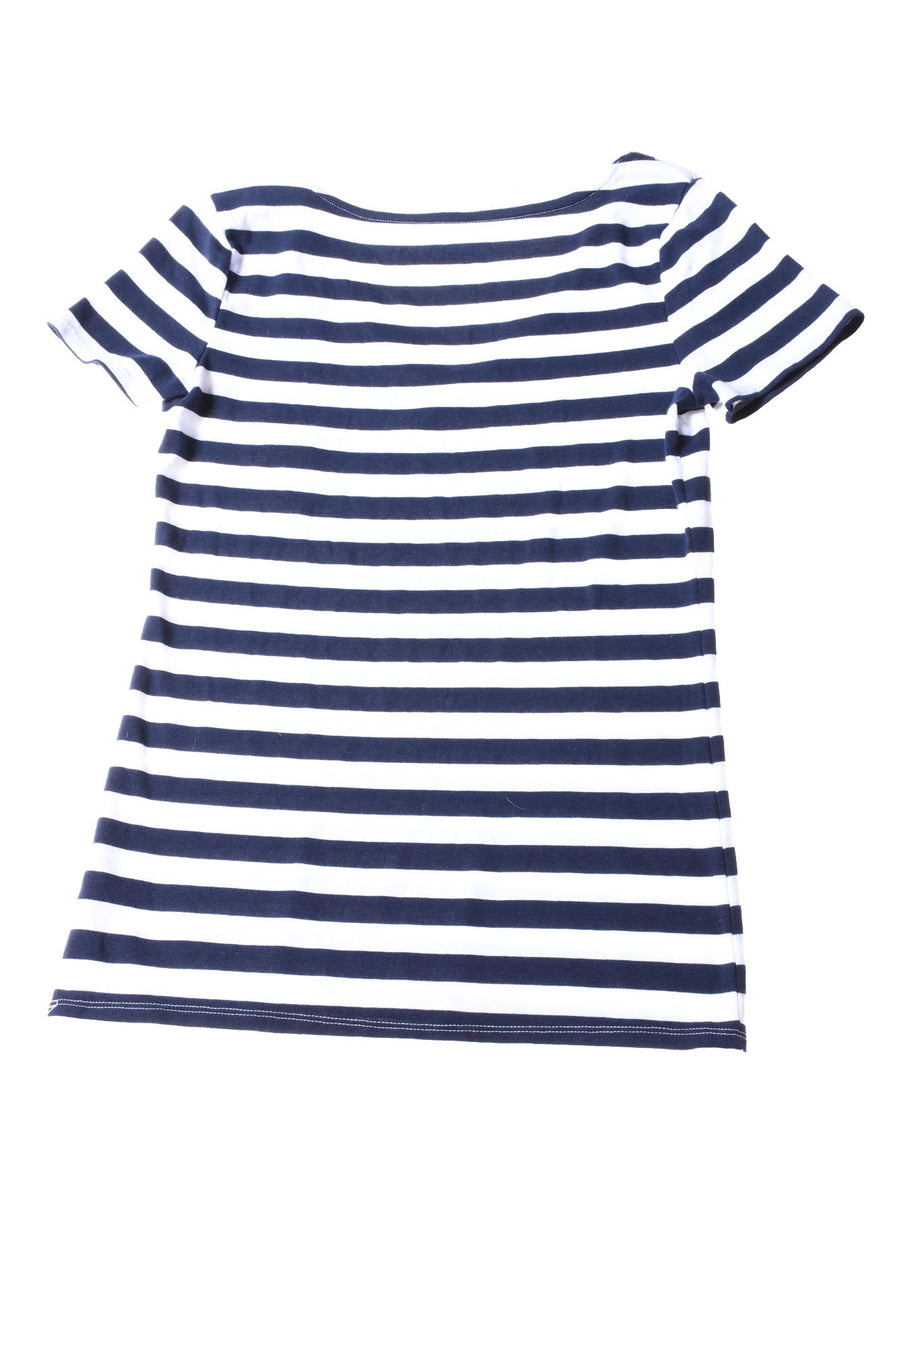 NEW Merona Women's Top Medium Navy & White